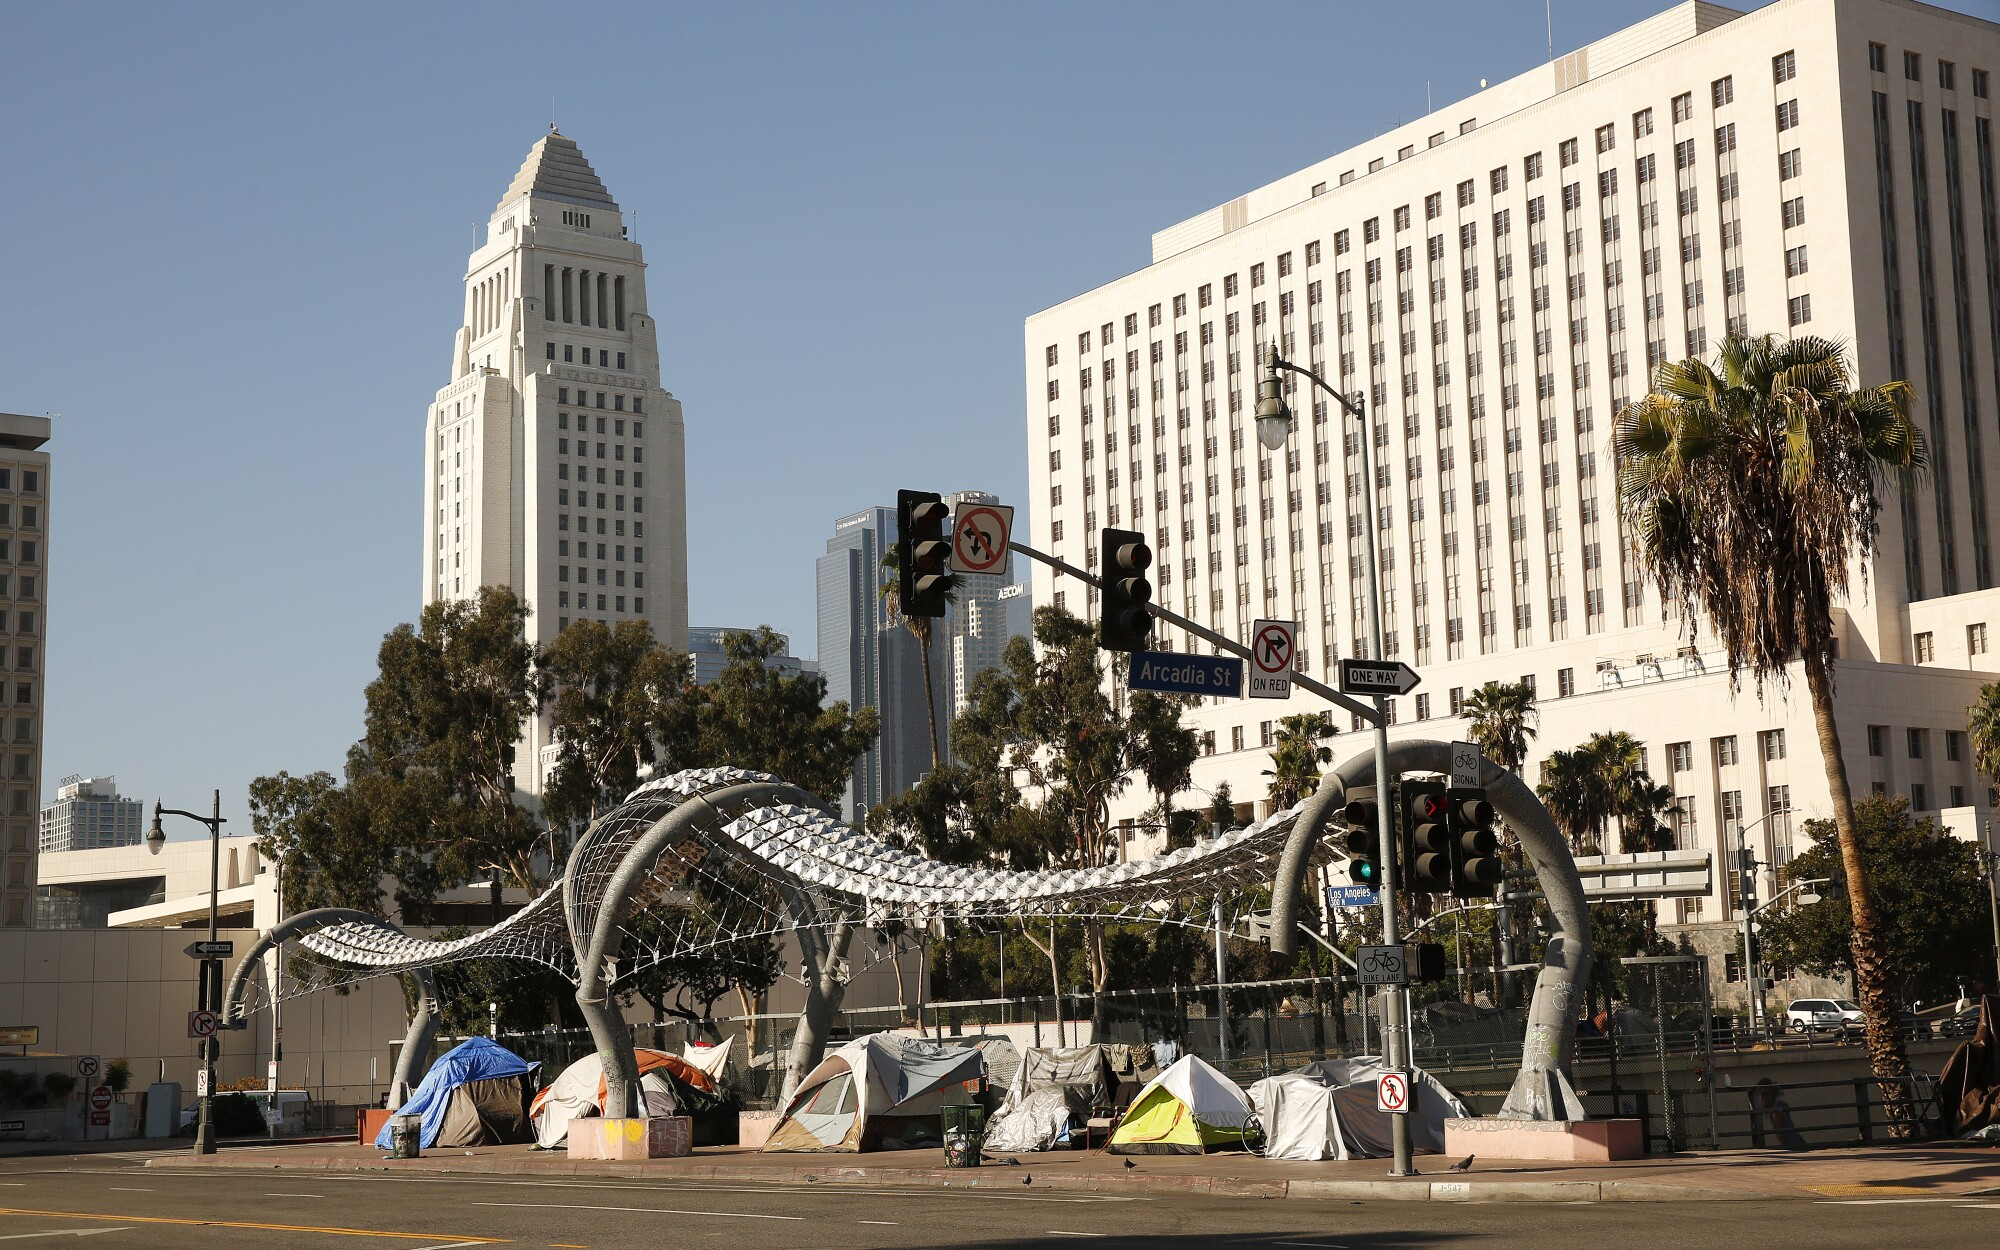 Tents along Los Angeles Street over the 101 Freeway.